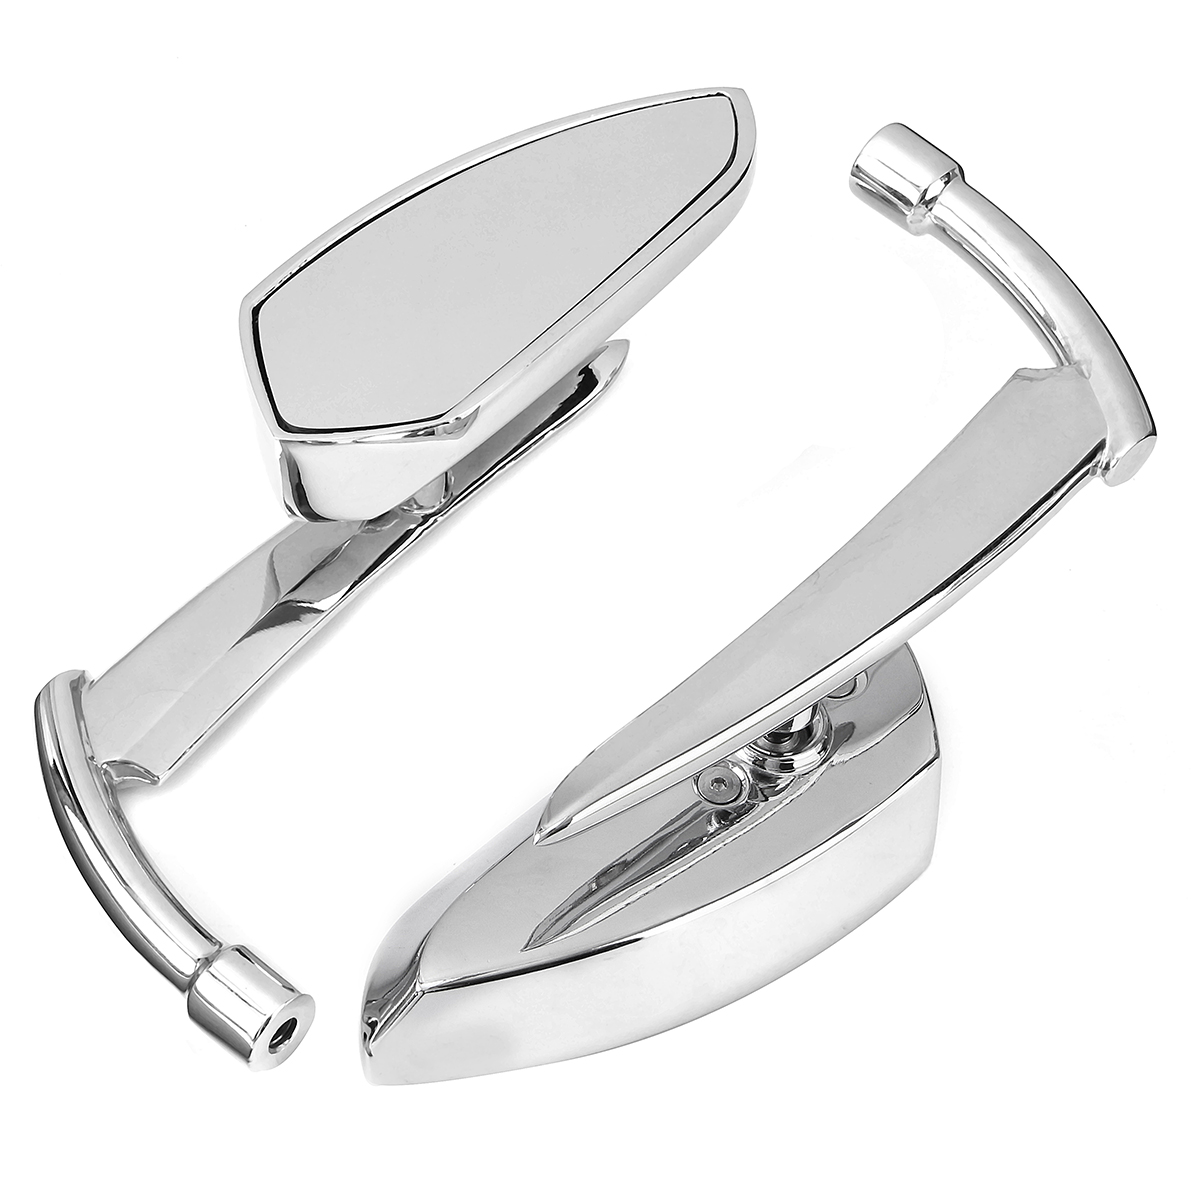 8mm 10mm Chromed CNC Blade Rear Review Mirrors For Harley Dyna Heritage Softail Sportster